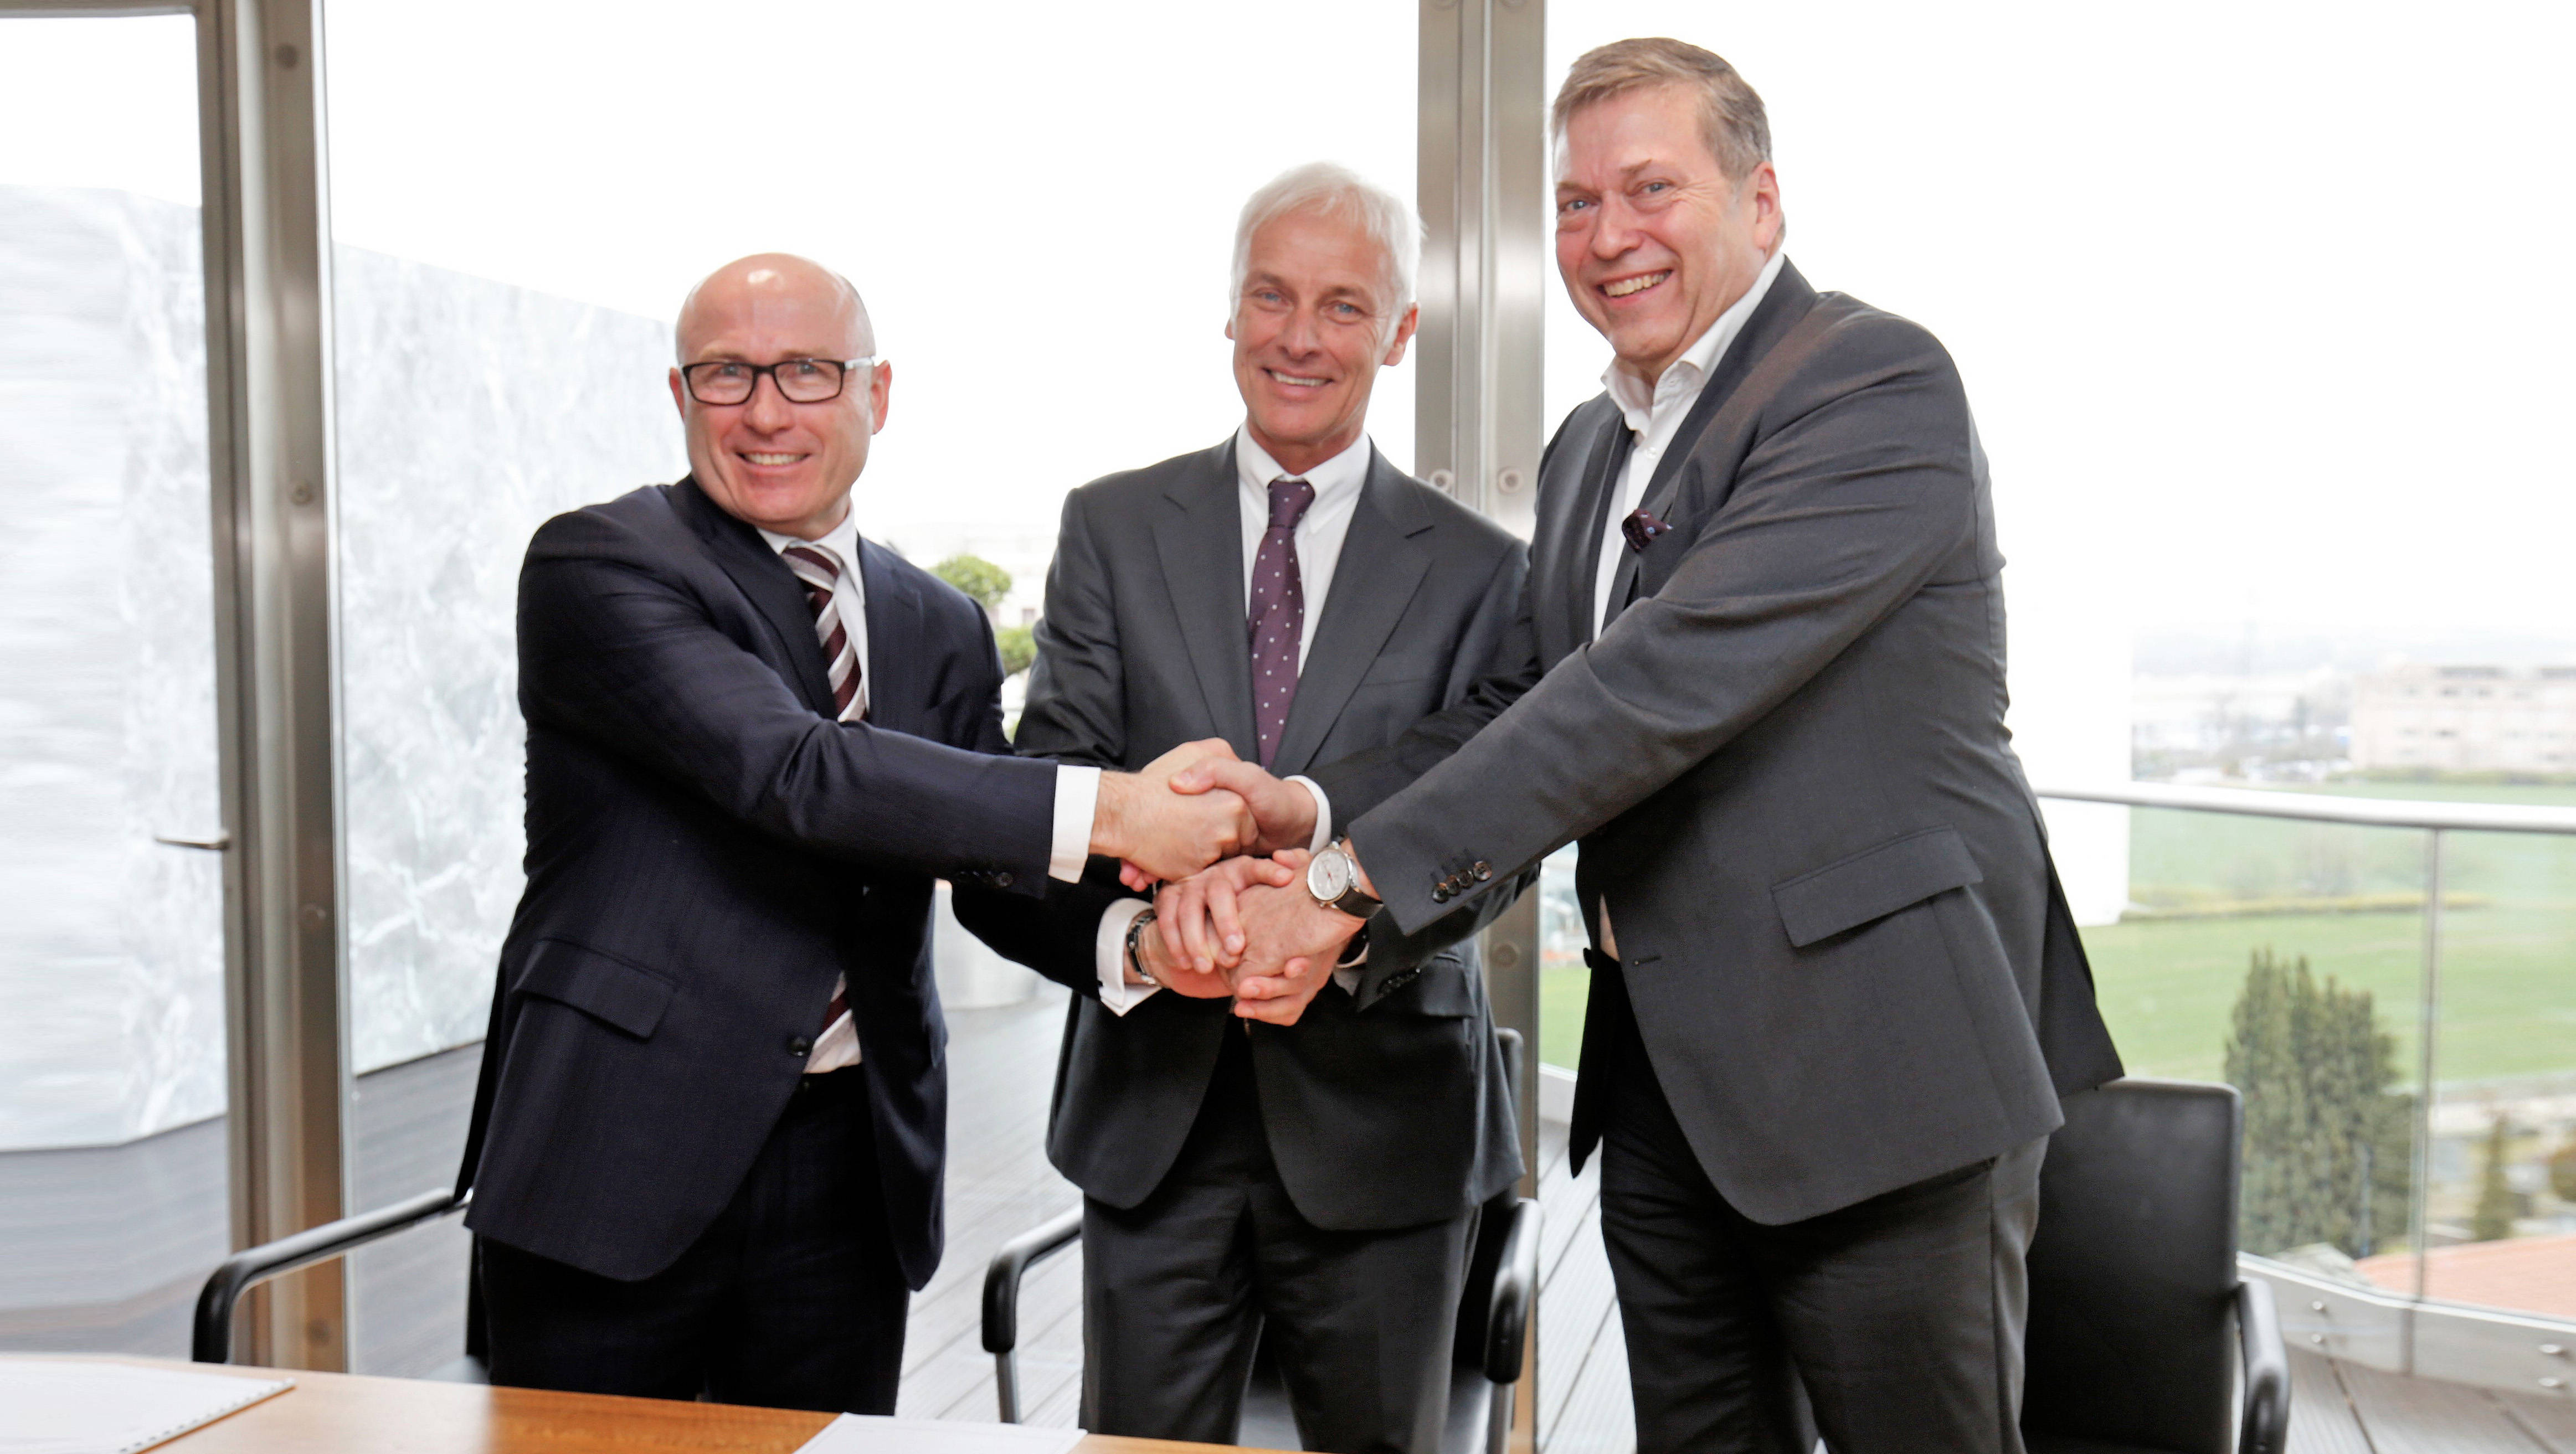 Tata Motors to jointly work with Volkswagen Group and Skoda for future products